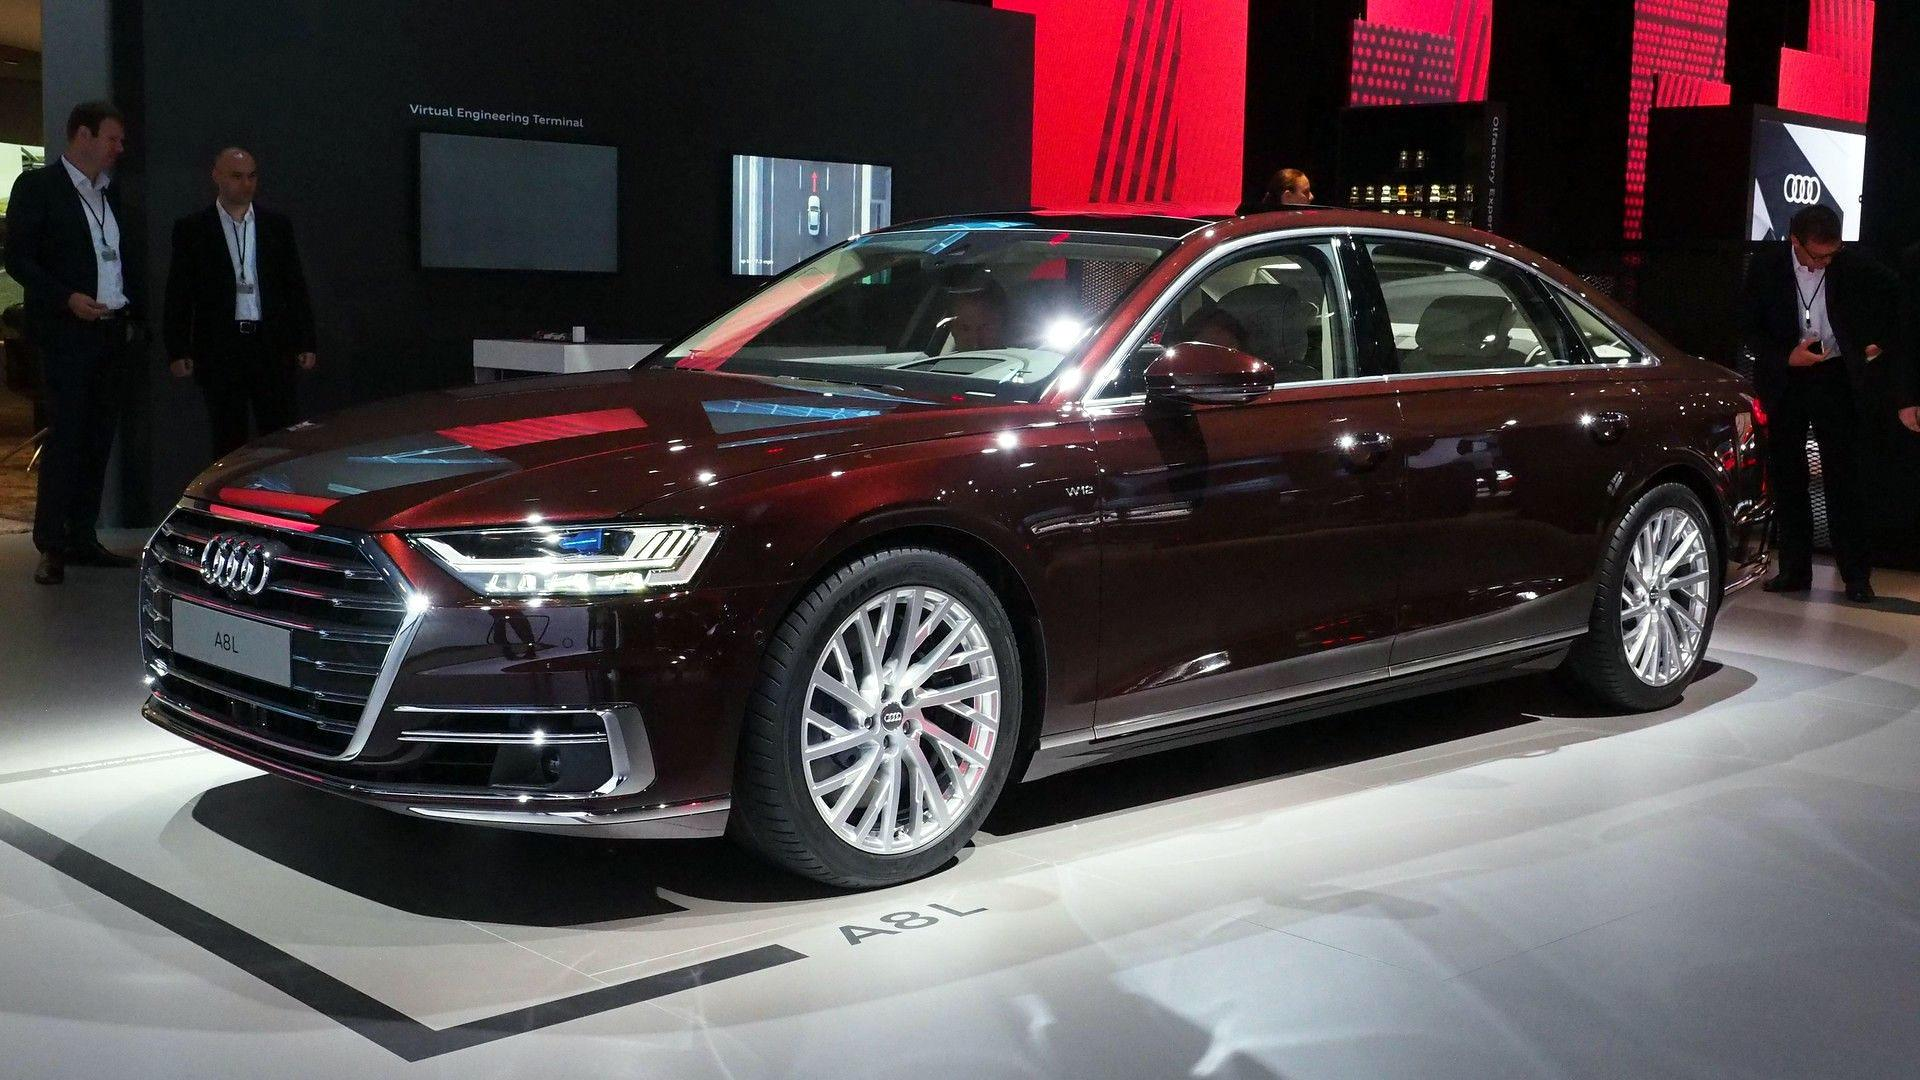 Garage Audi Tours 2018 Audi A8 Has Lasers Foot Massagers And A Big Price Tag